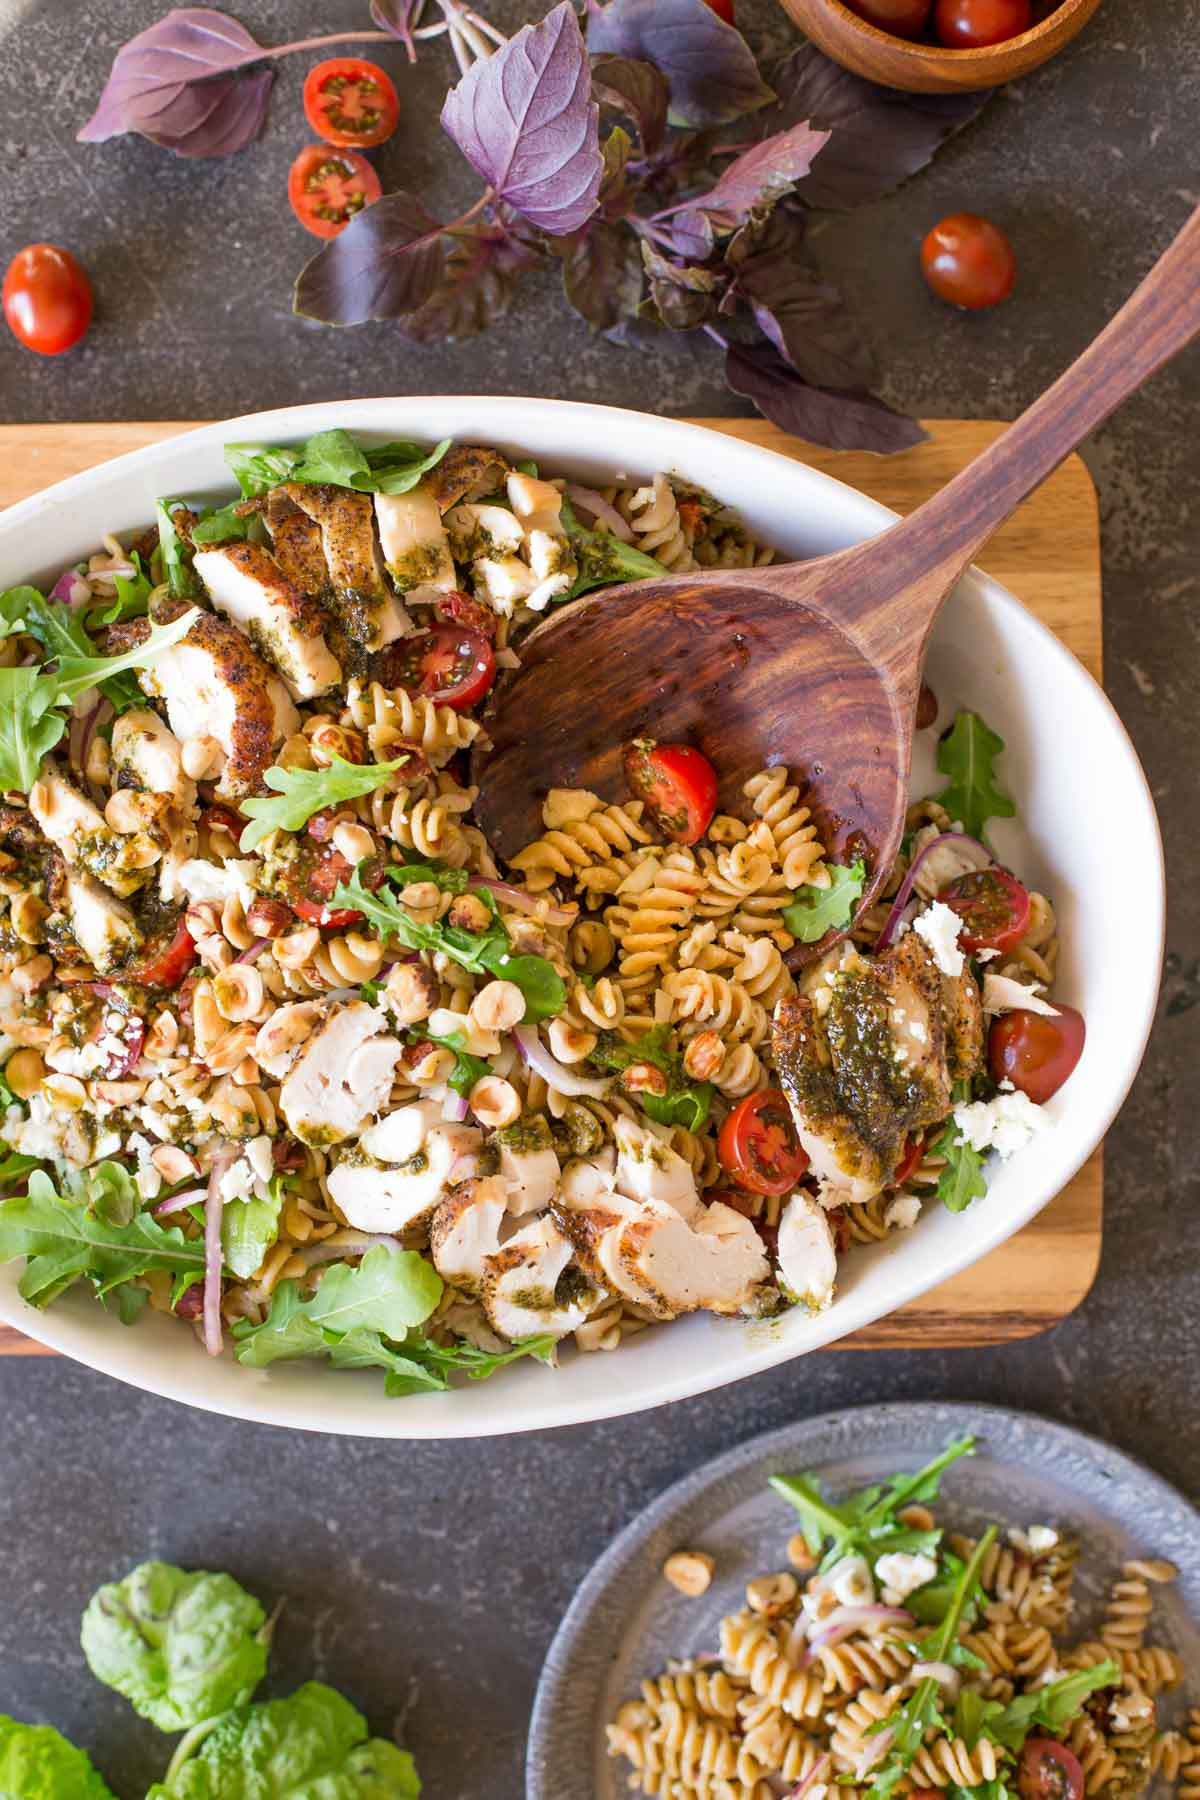 Whole Wheat Pasta Salad With Honey Basil Balsamic Vinaigrette in a large serving bowl with a wooden spoon in it, and a serving of the pasta salad on a plate next to it.